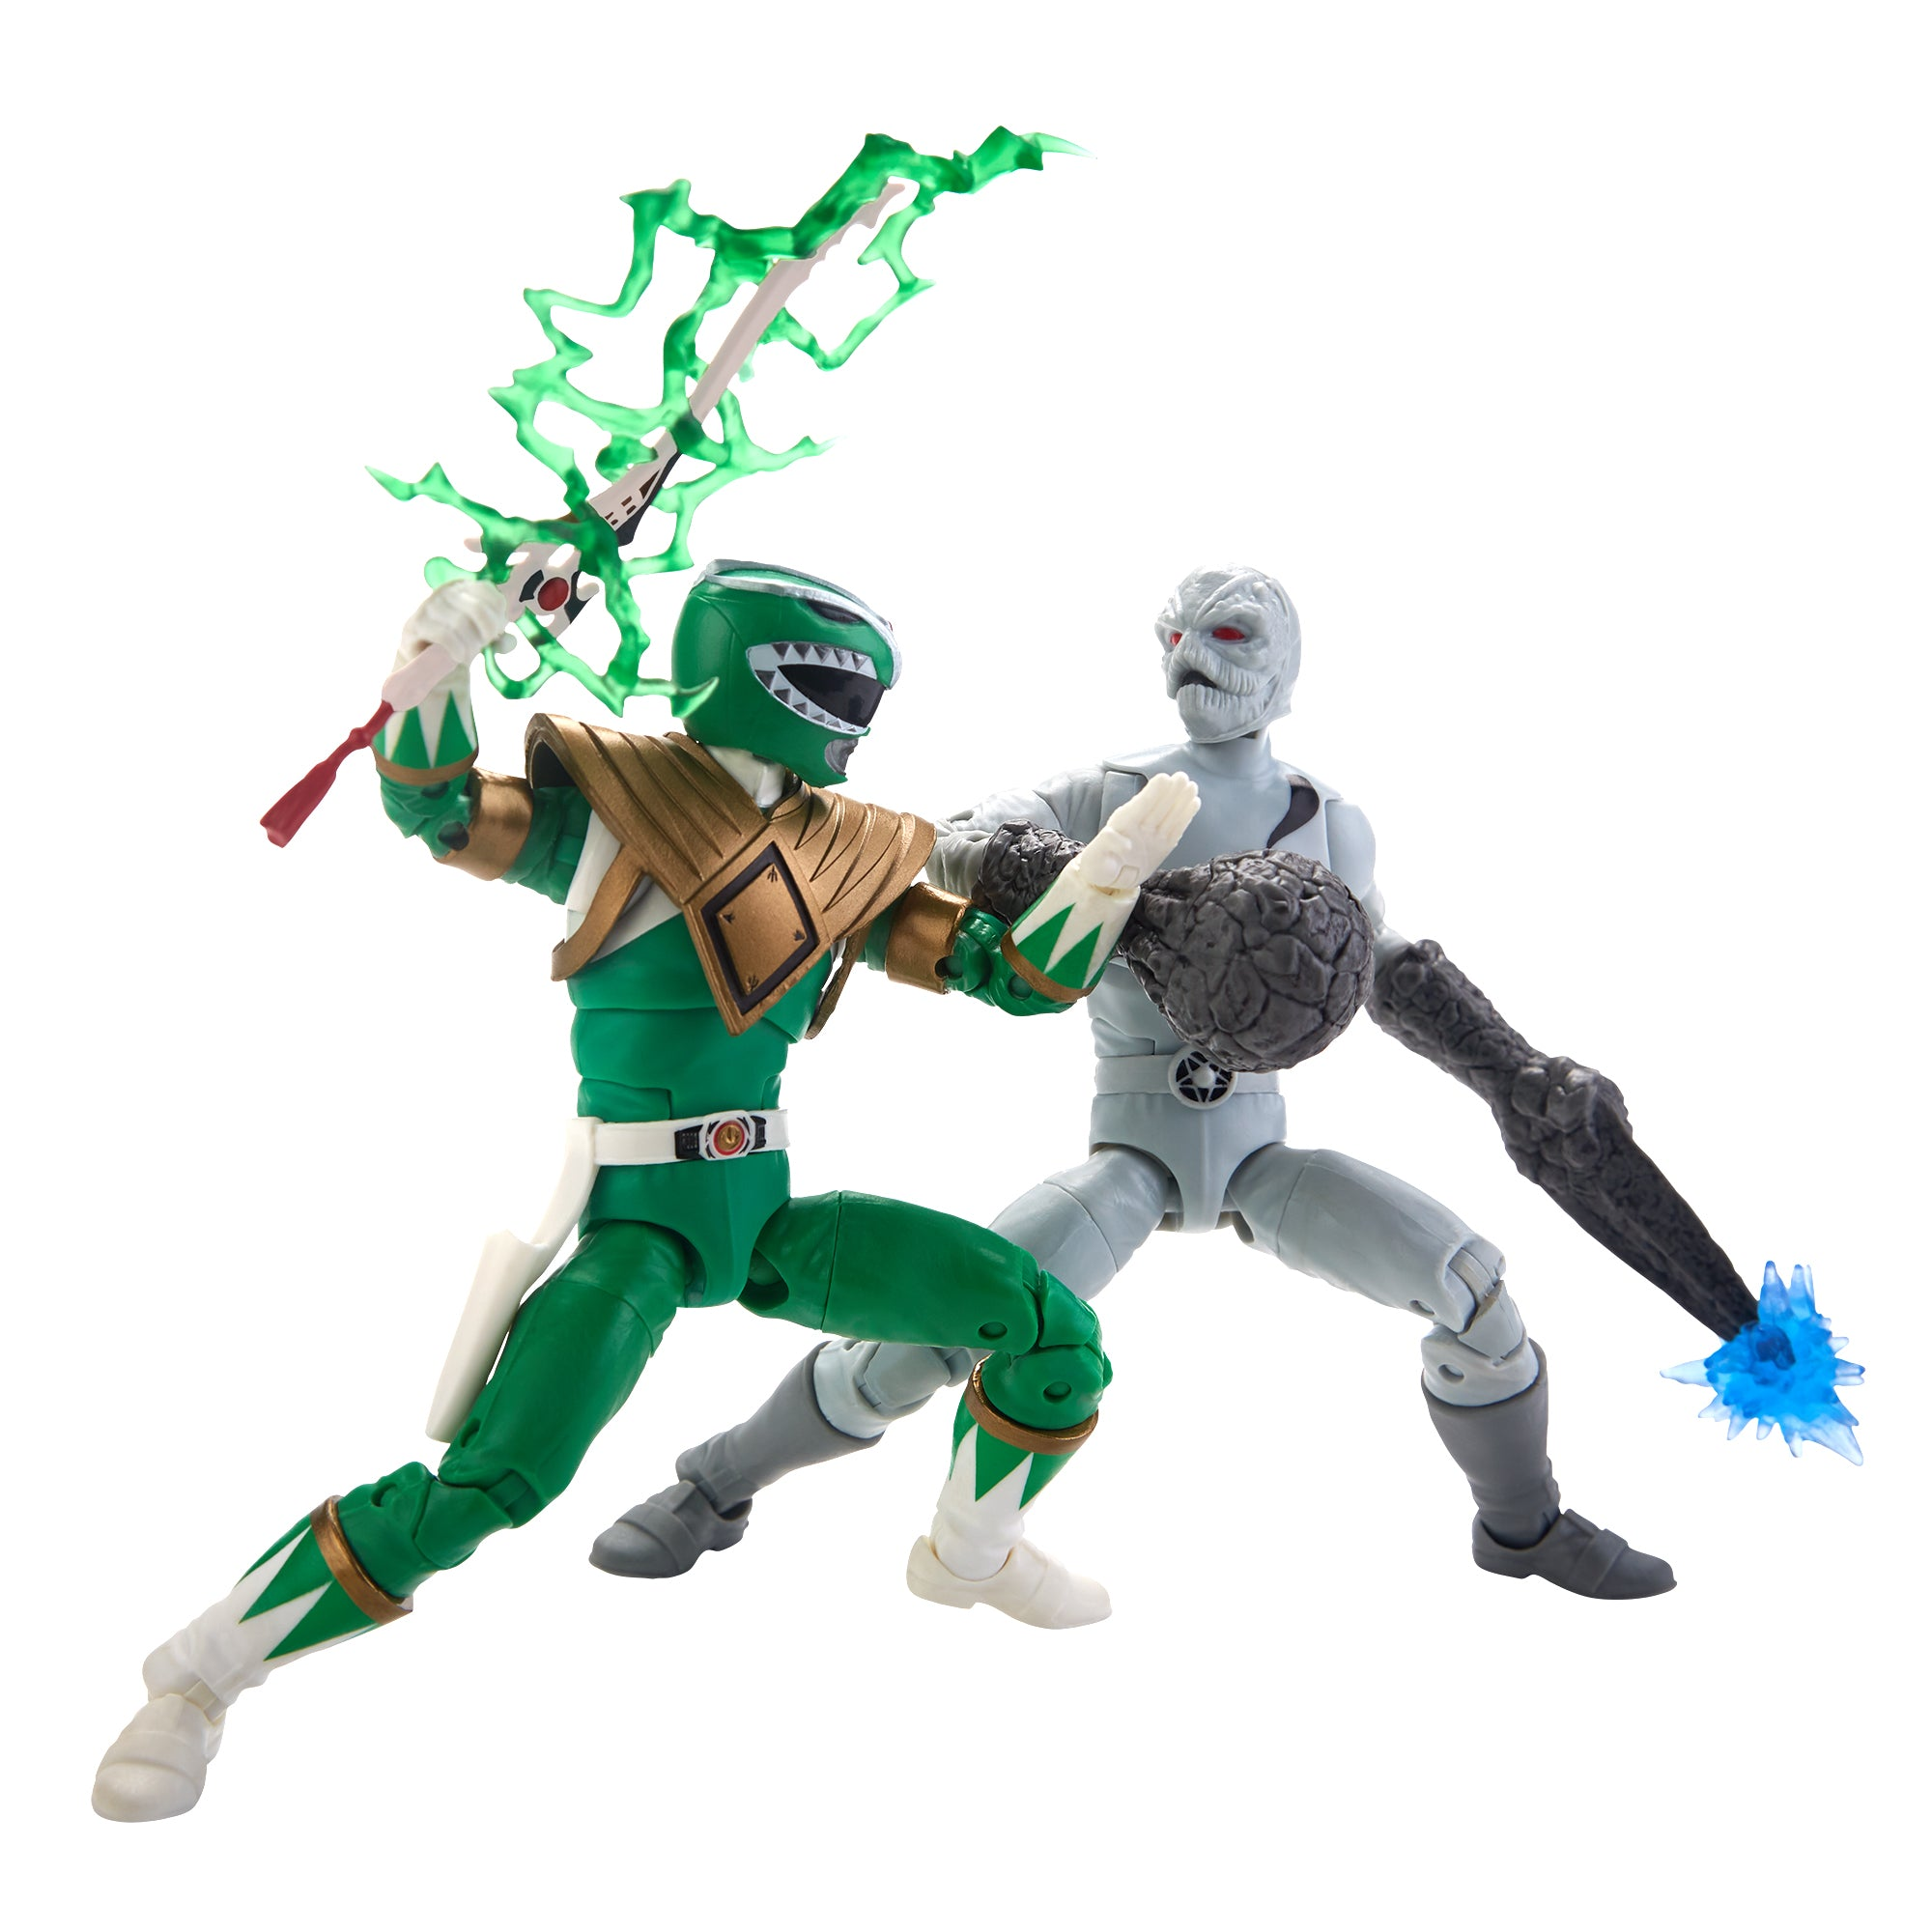 2-Pack Lightning Collection Green Ranger and Putty Power Rangers - Multi